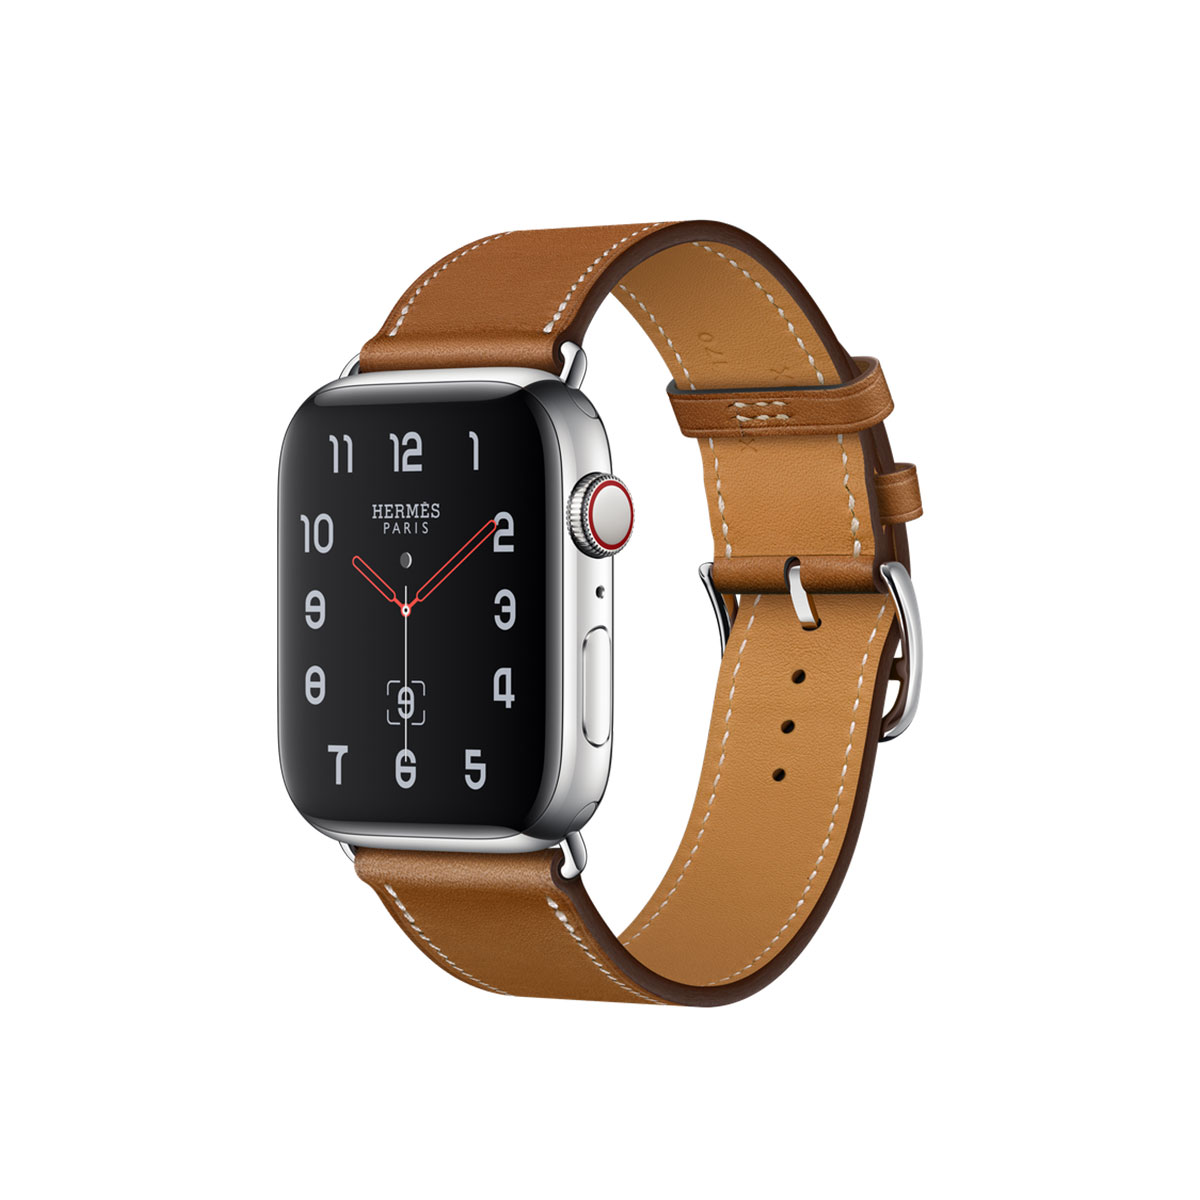 Apple Watch Hermès GPS + Cellular, 44mm Stainless Steel Case with Fauve Barenia Leather Single Tour